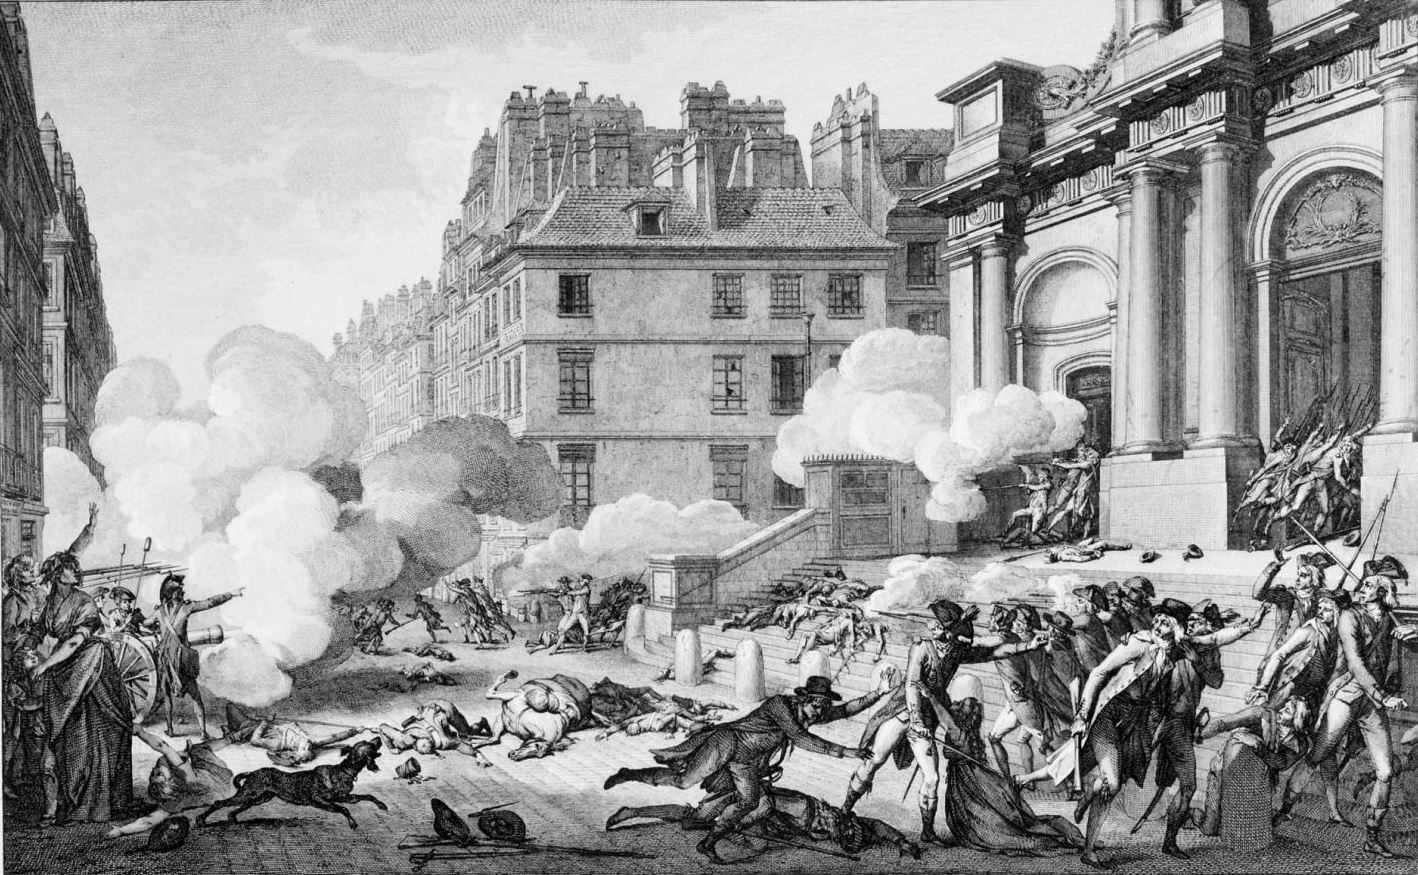 Journée du 13 Vendémiaire. Artillery fire in front of the Church of Saint-Roch, Paris, Rue Saint-Honoré